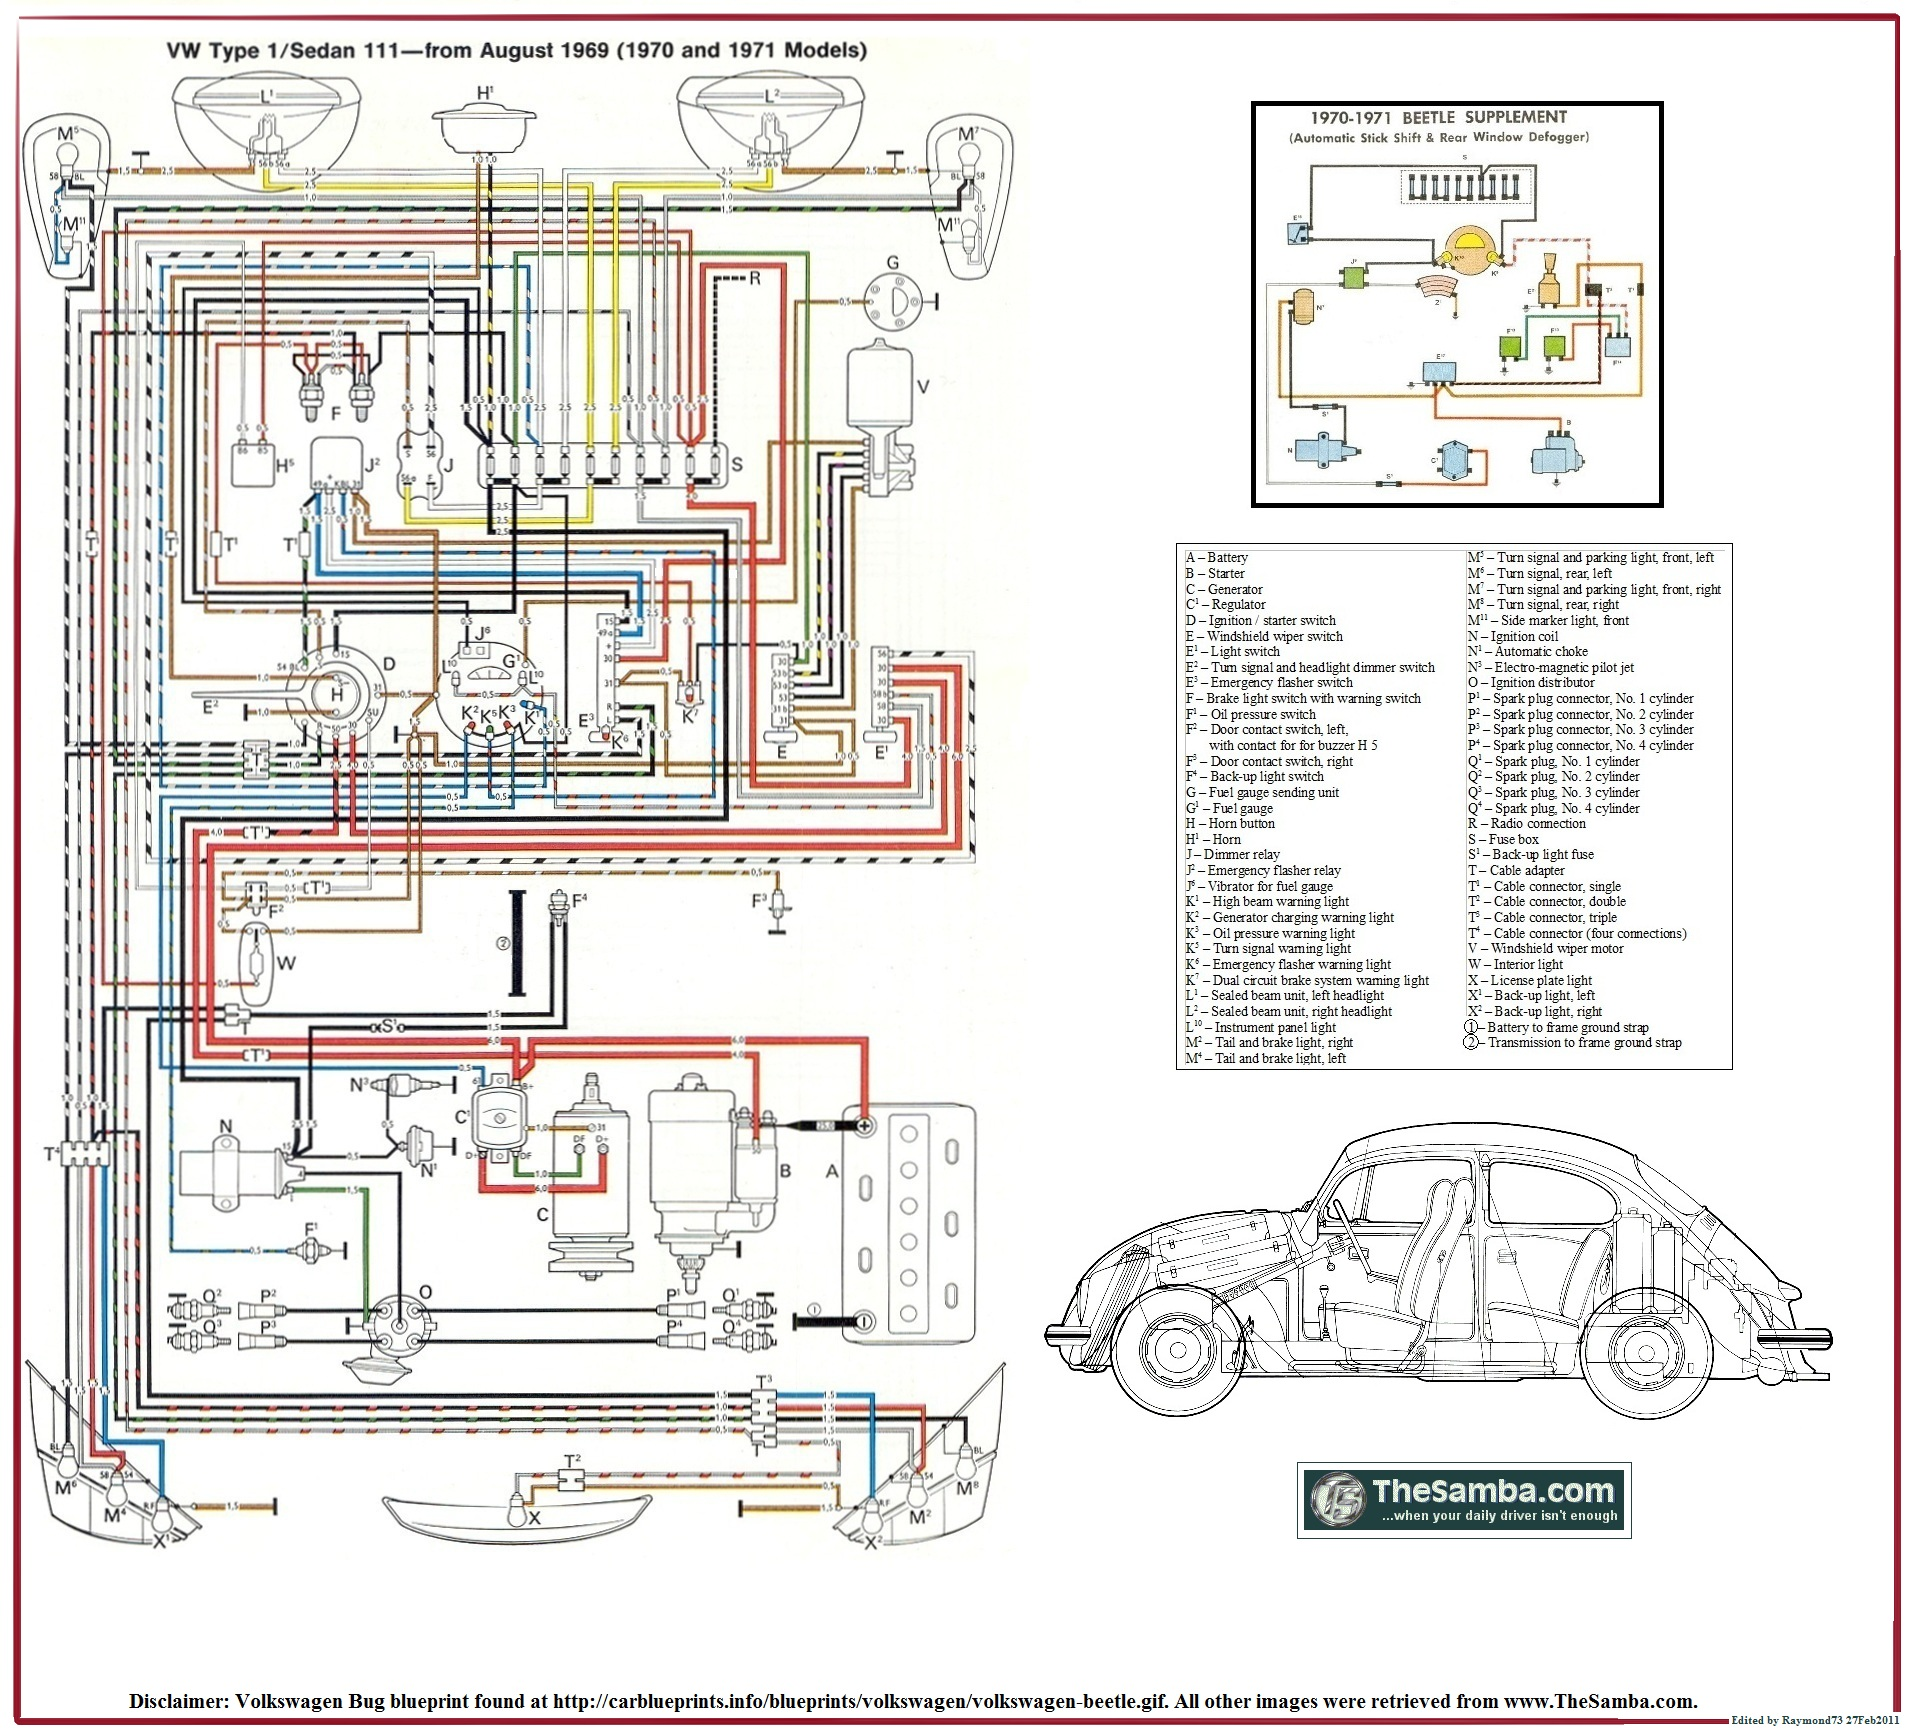 thesamba.com :: type 1 wiring diagrams 69 beetle ignition wiring diagram